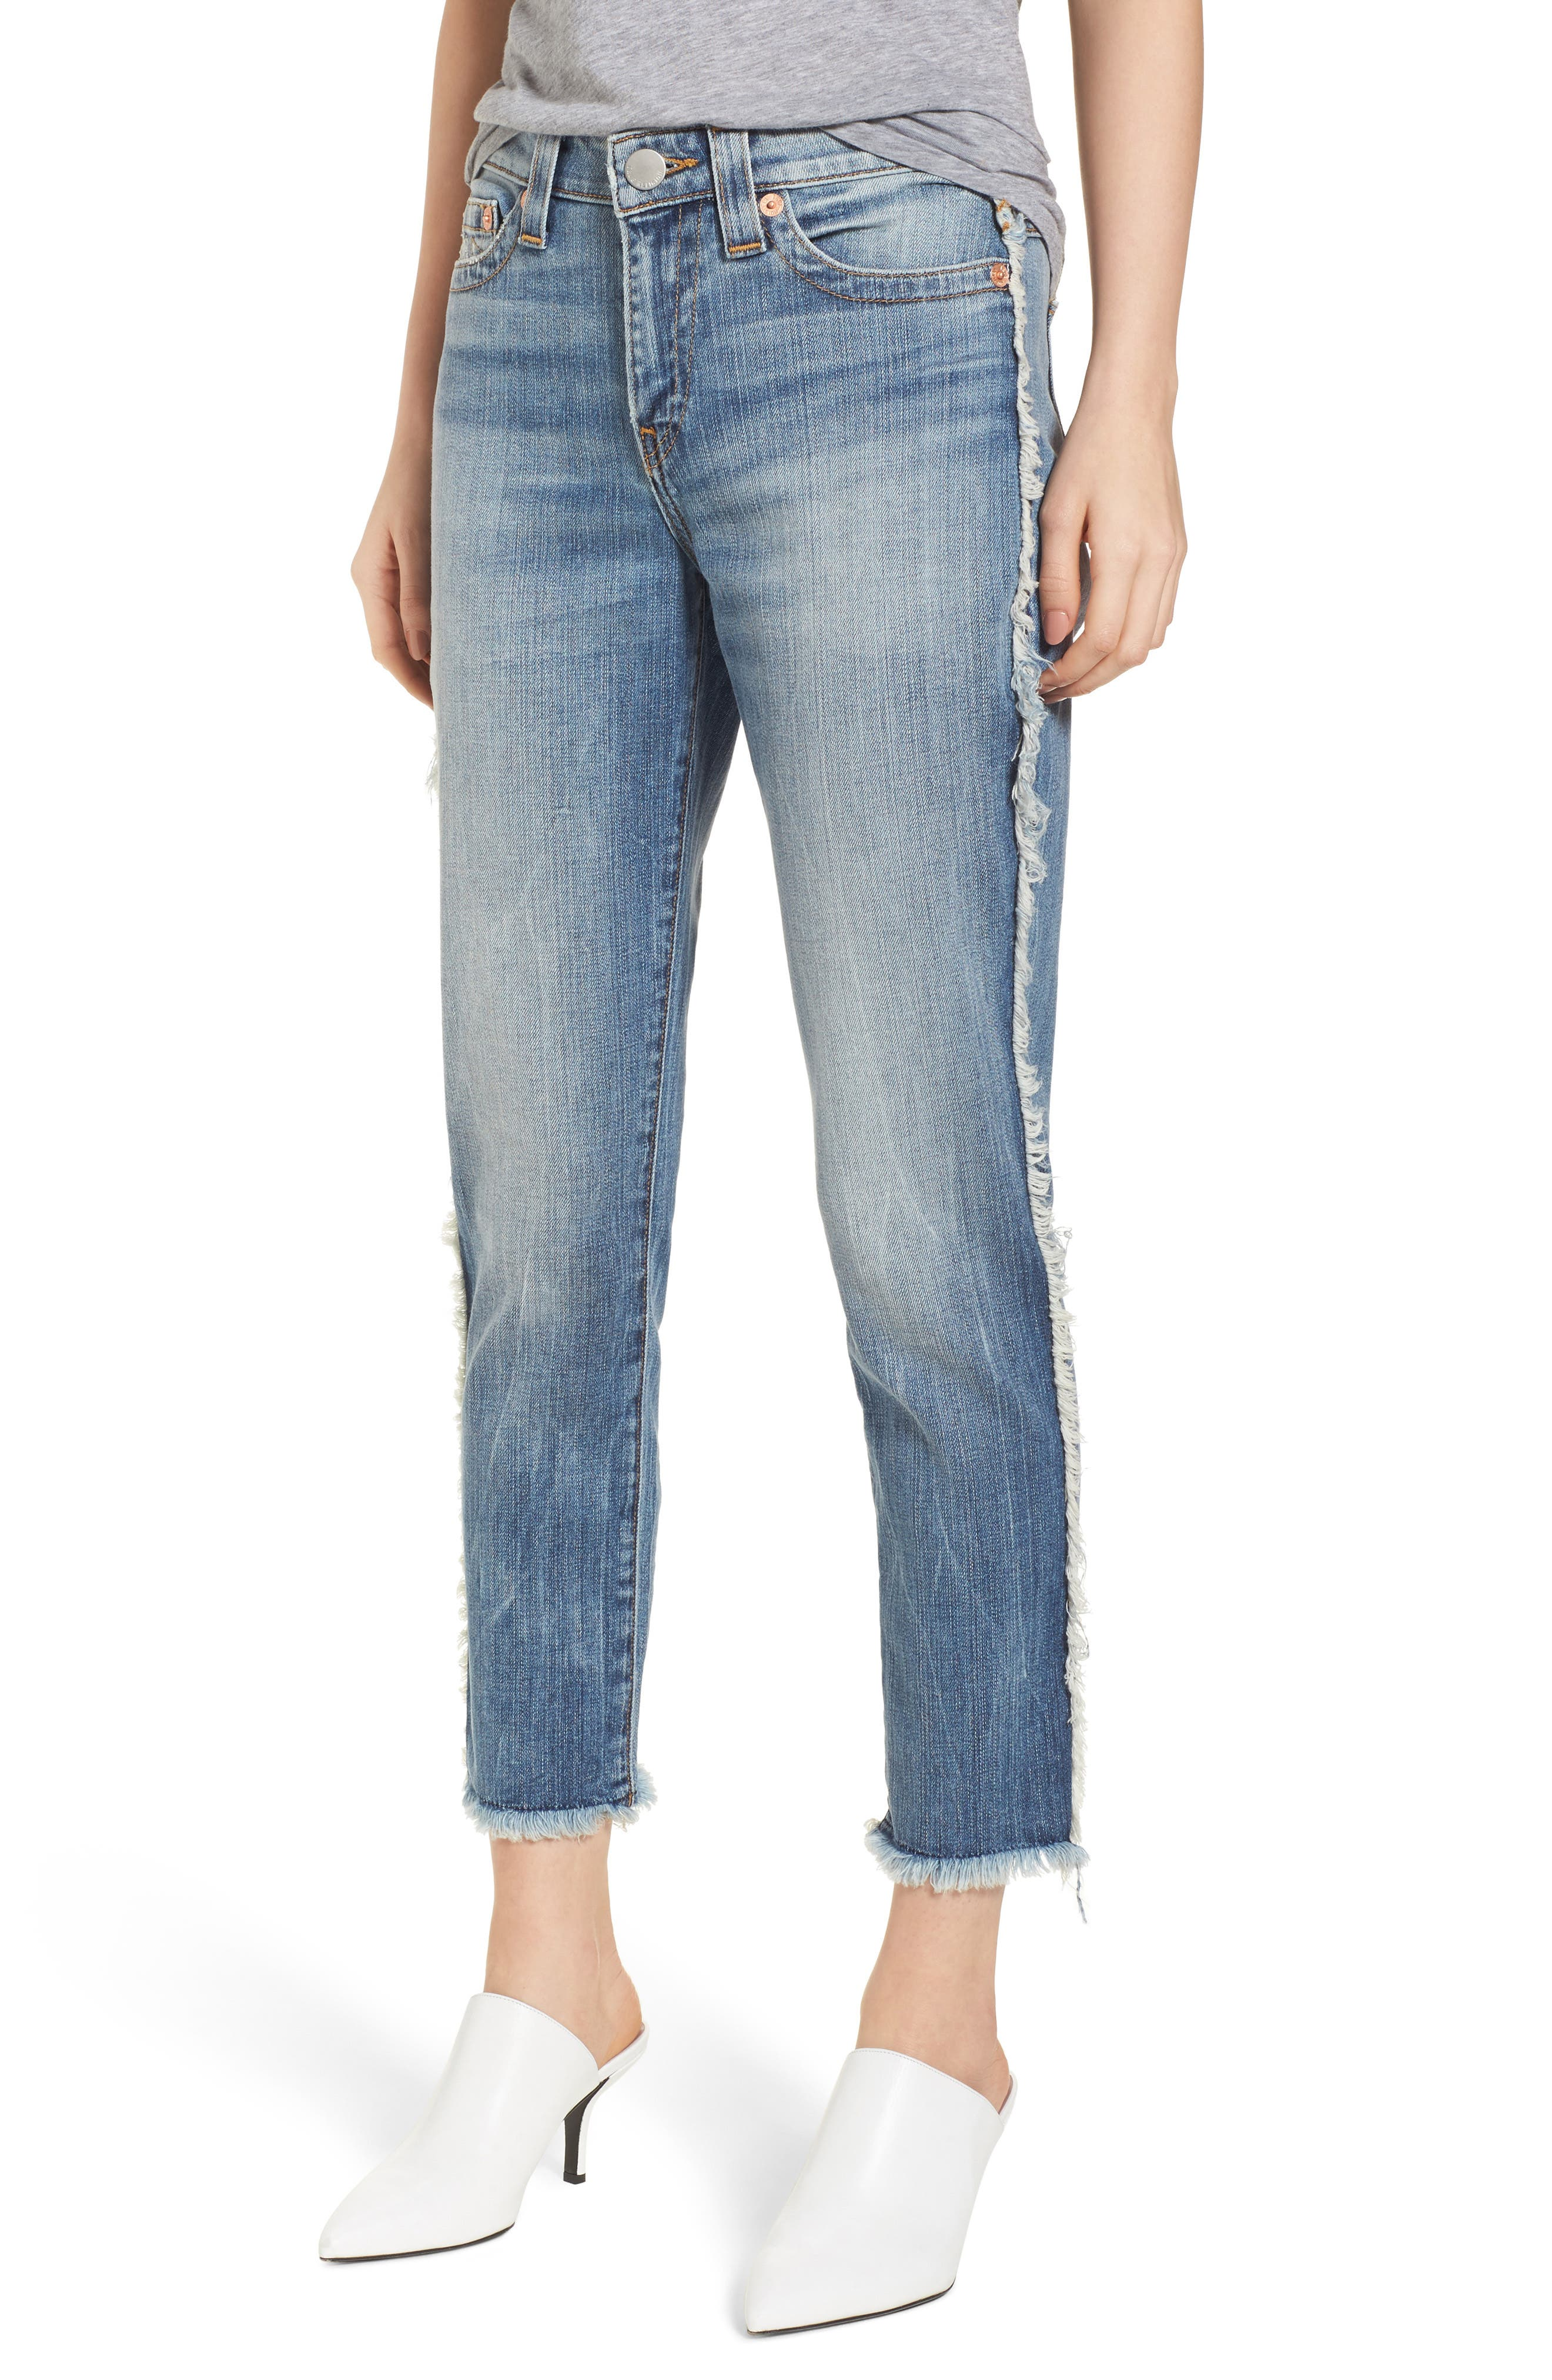 Colette High Waist Tapered Skinny Jeans,                             Main thumbnail 1, color,                             401